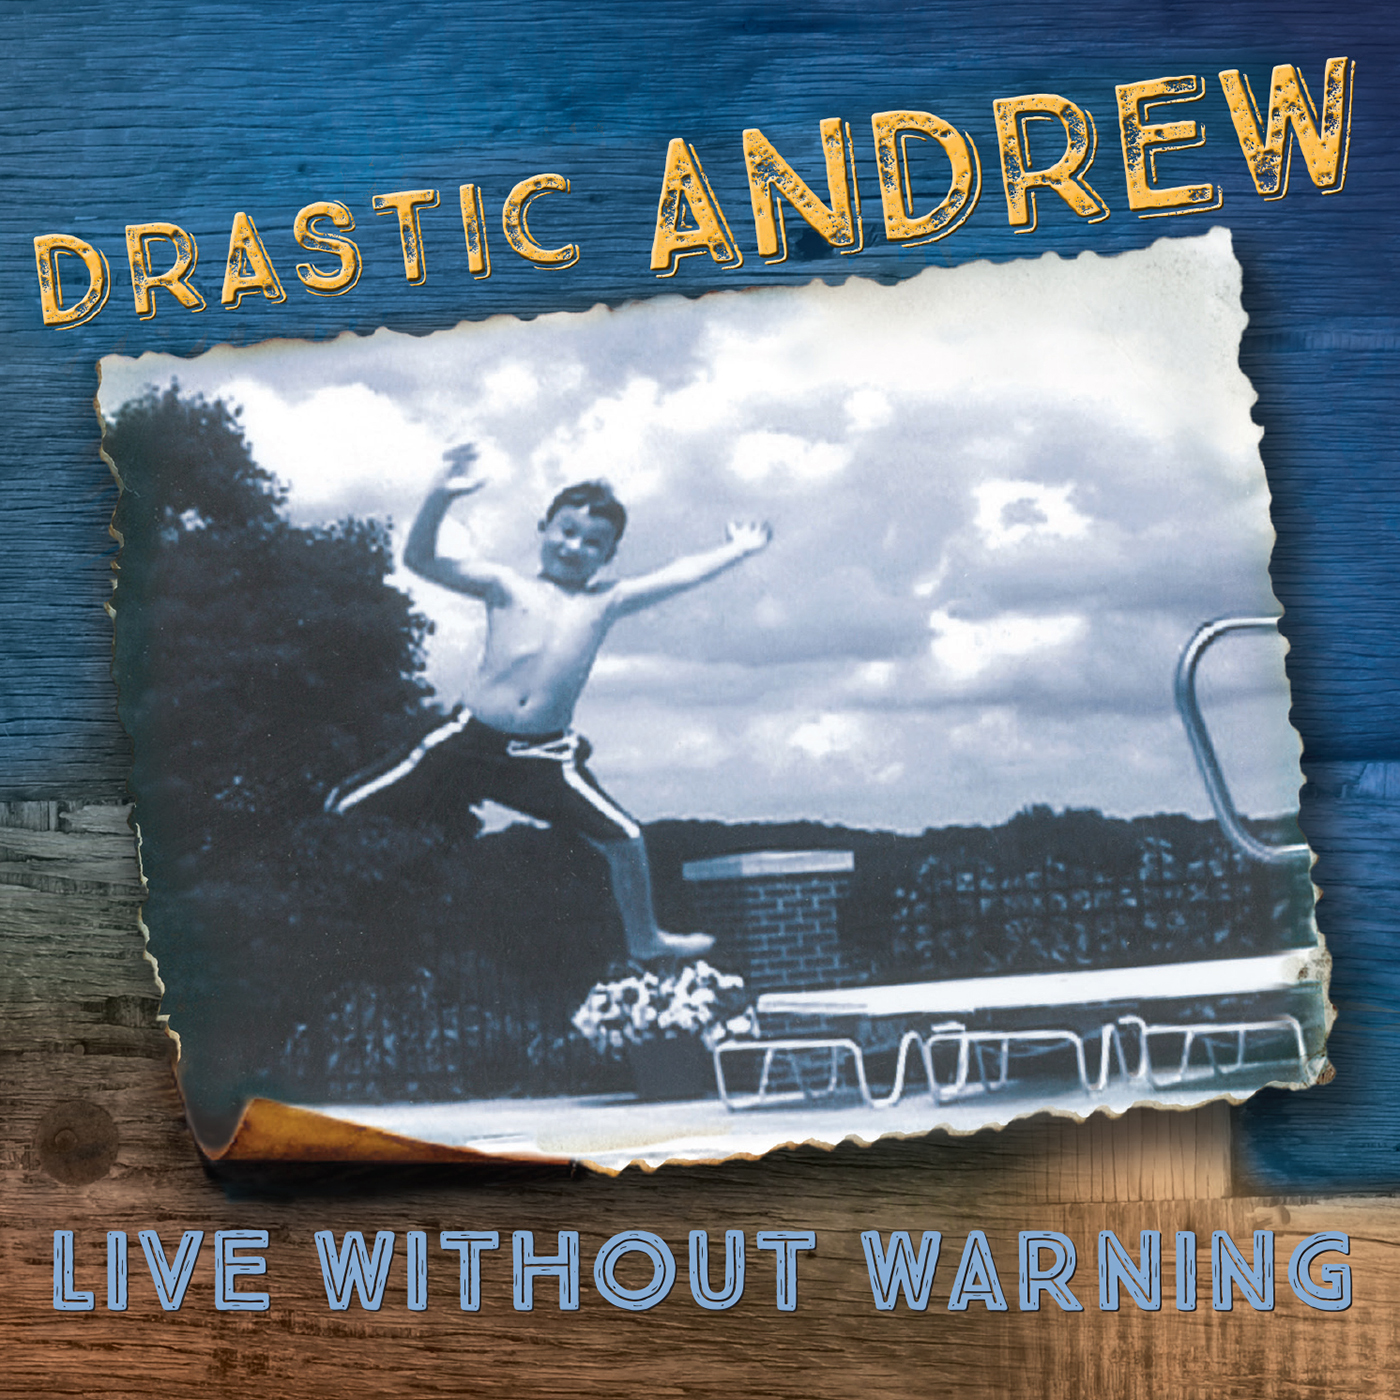 Live Without Warning